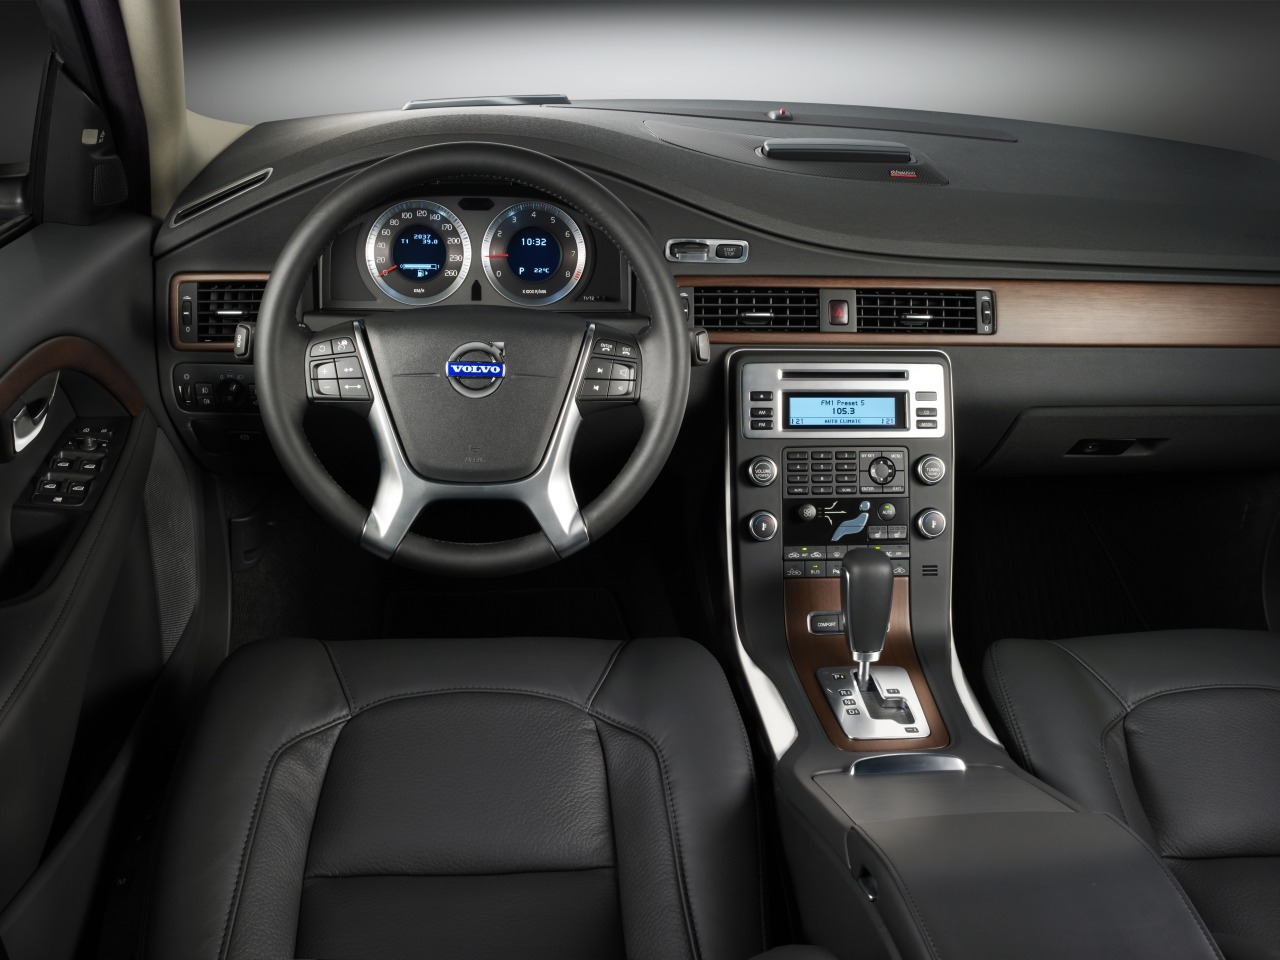 VOLVO S80 - Review and photos